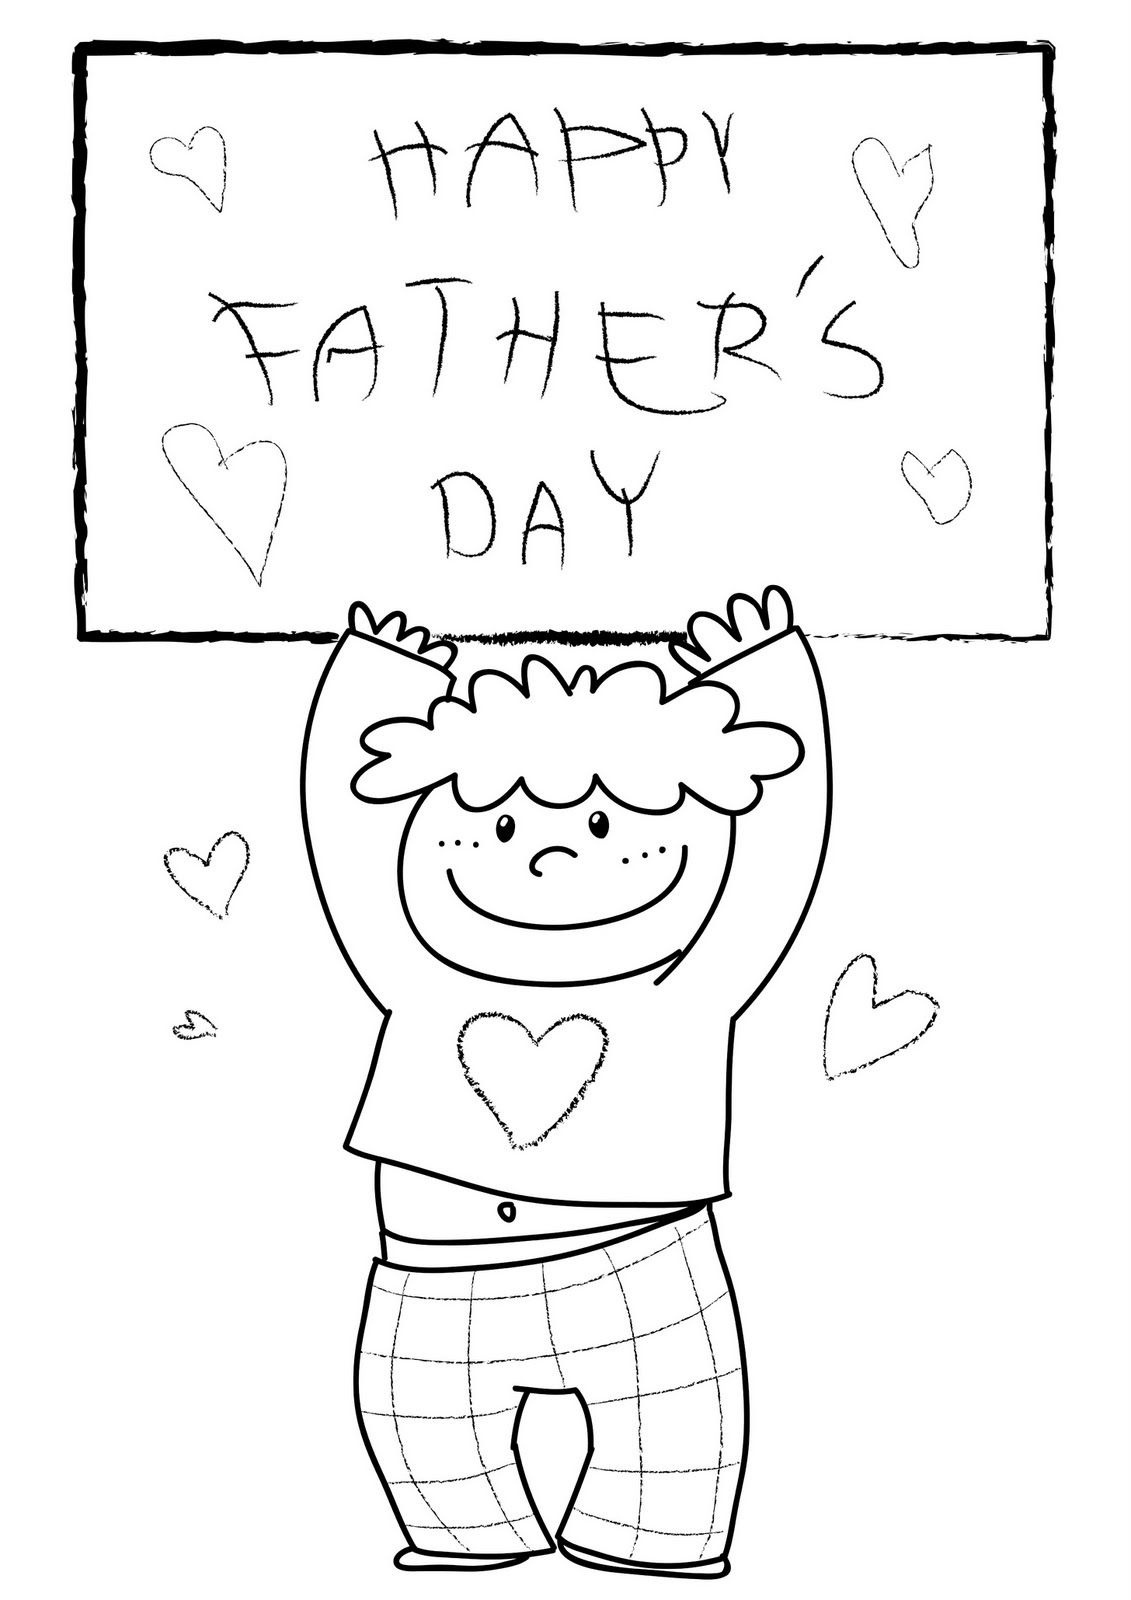 Fathers Day Coloring Page - Check Out Free Printable Happy Fathers - Free Printable Fathers Day Coloring Pages For Grandpa